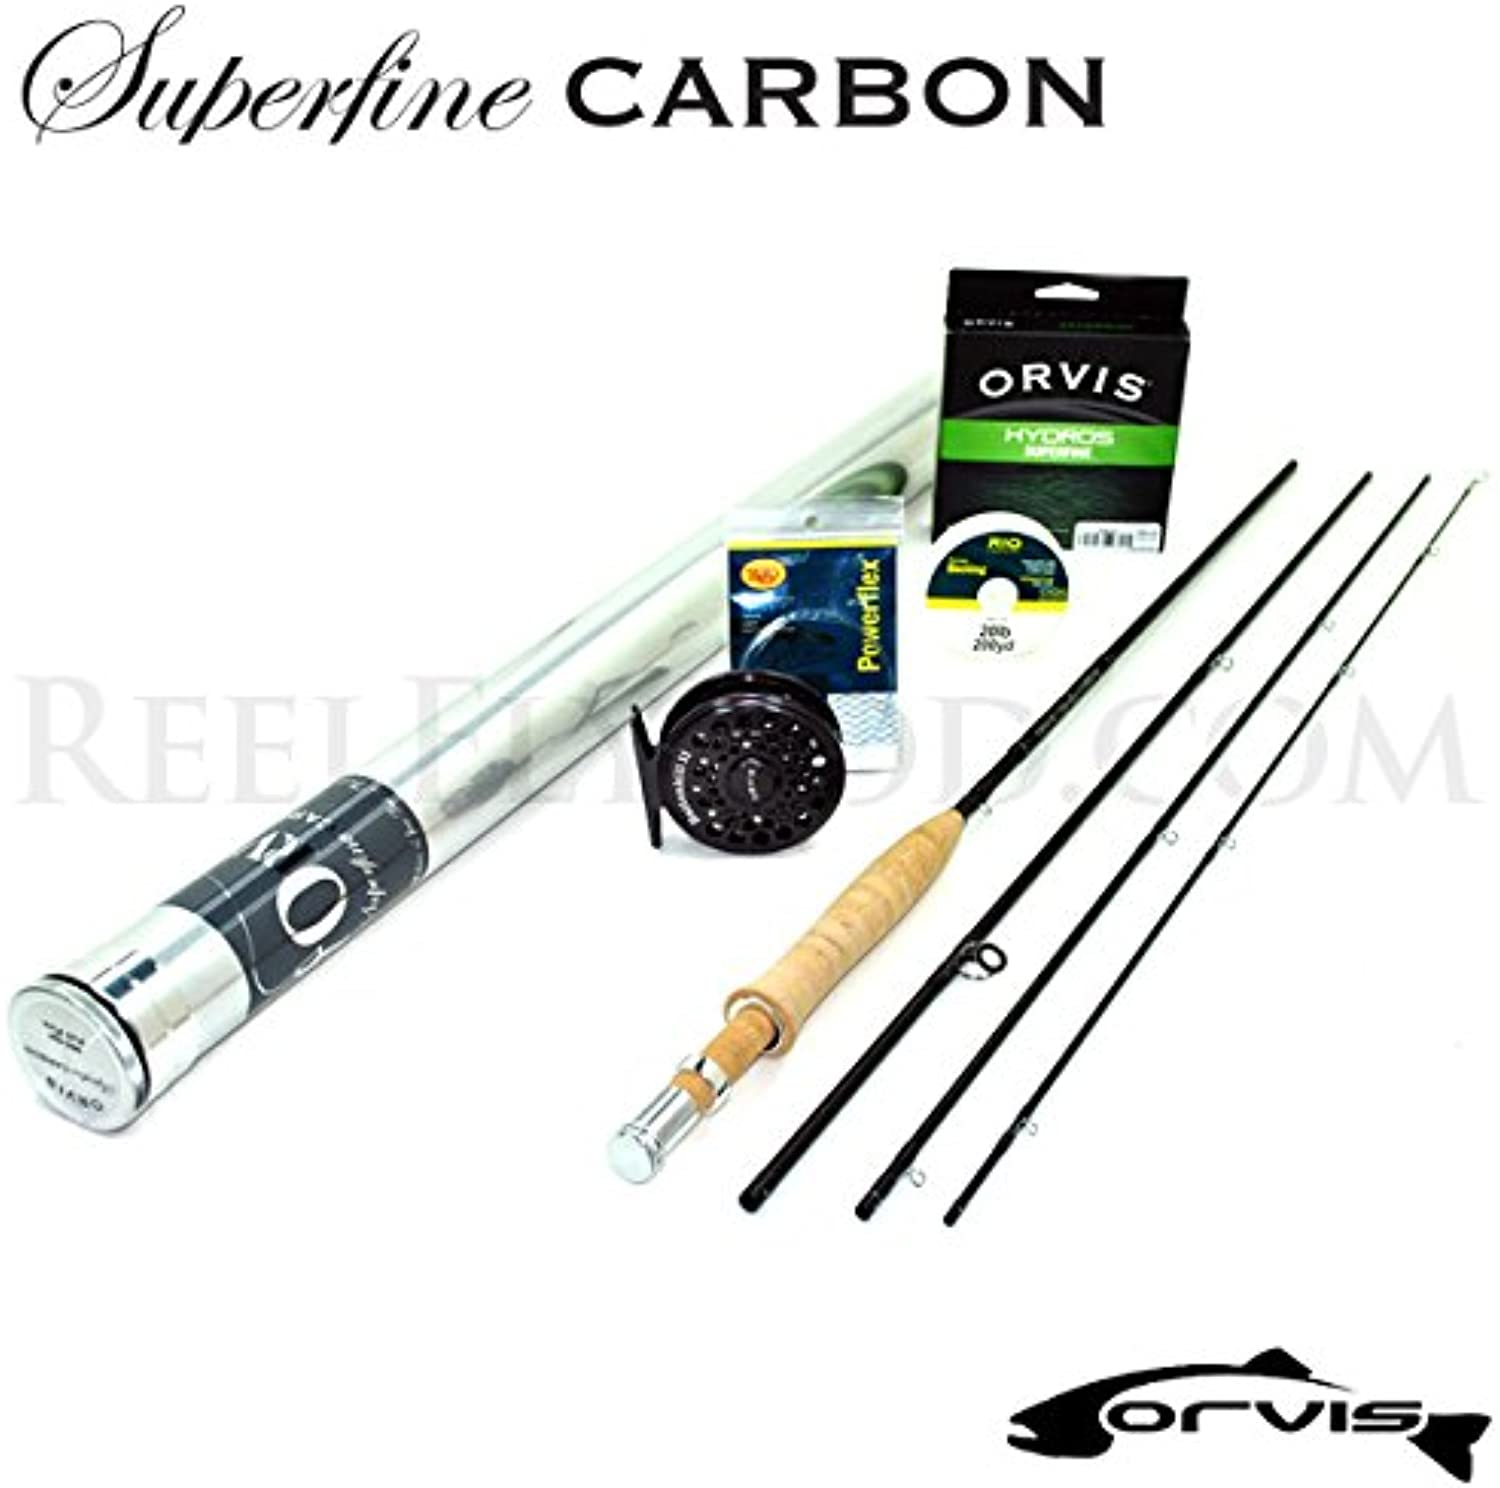 Orvis Superfine Carbon 2wt 6'0  Fly Rod Outfit (6'0 , 2wt, 3pc)